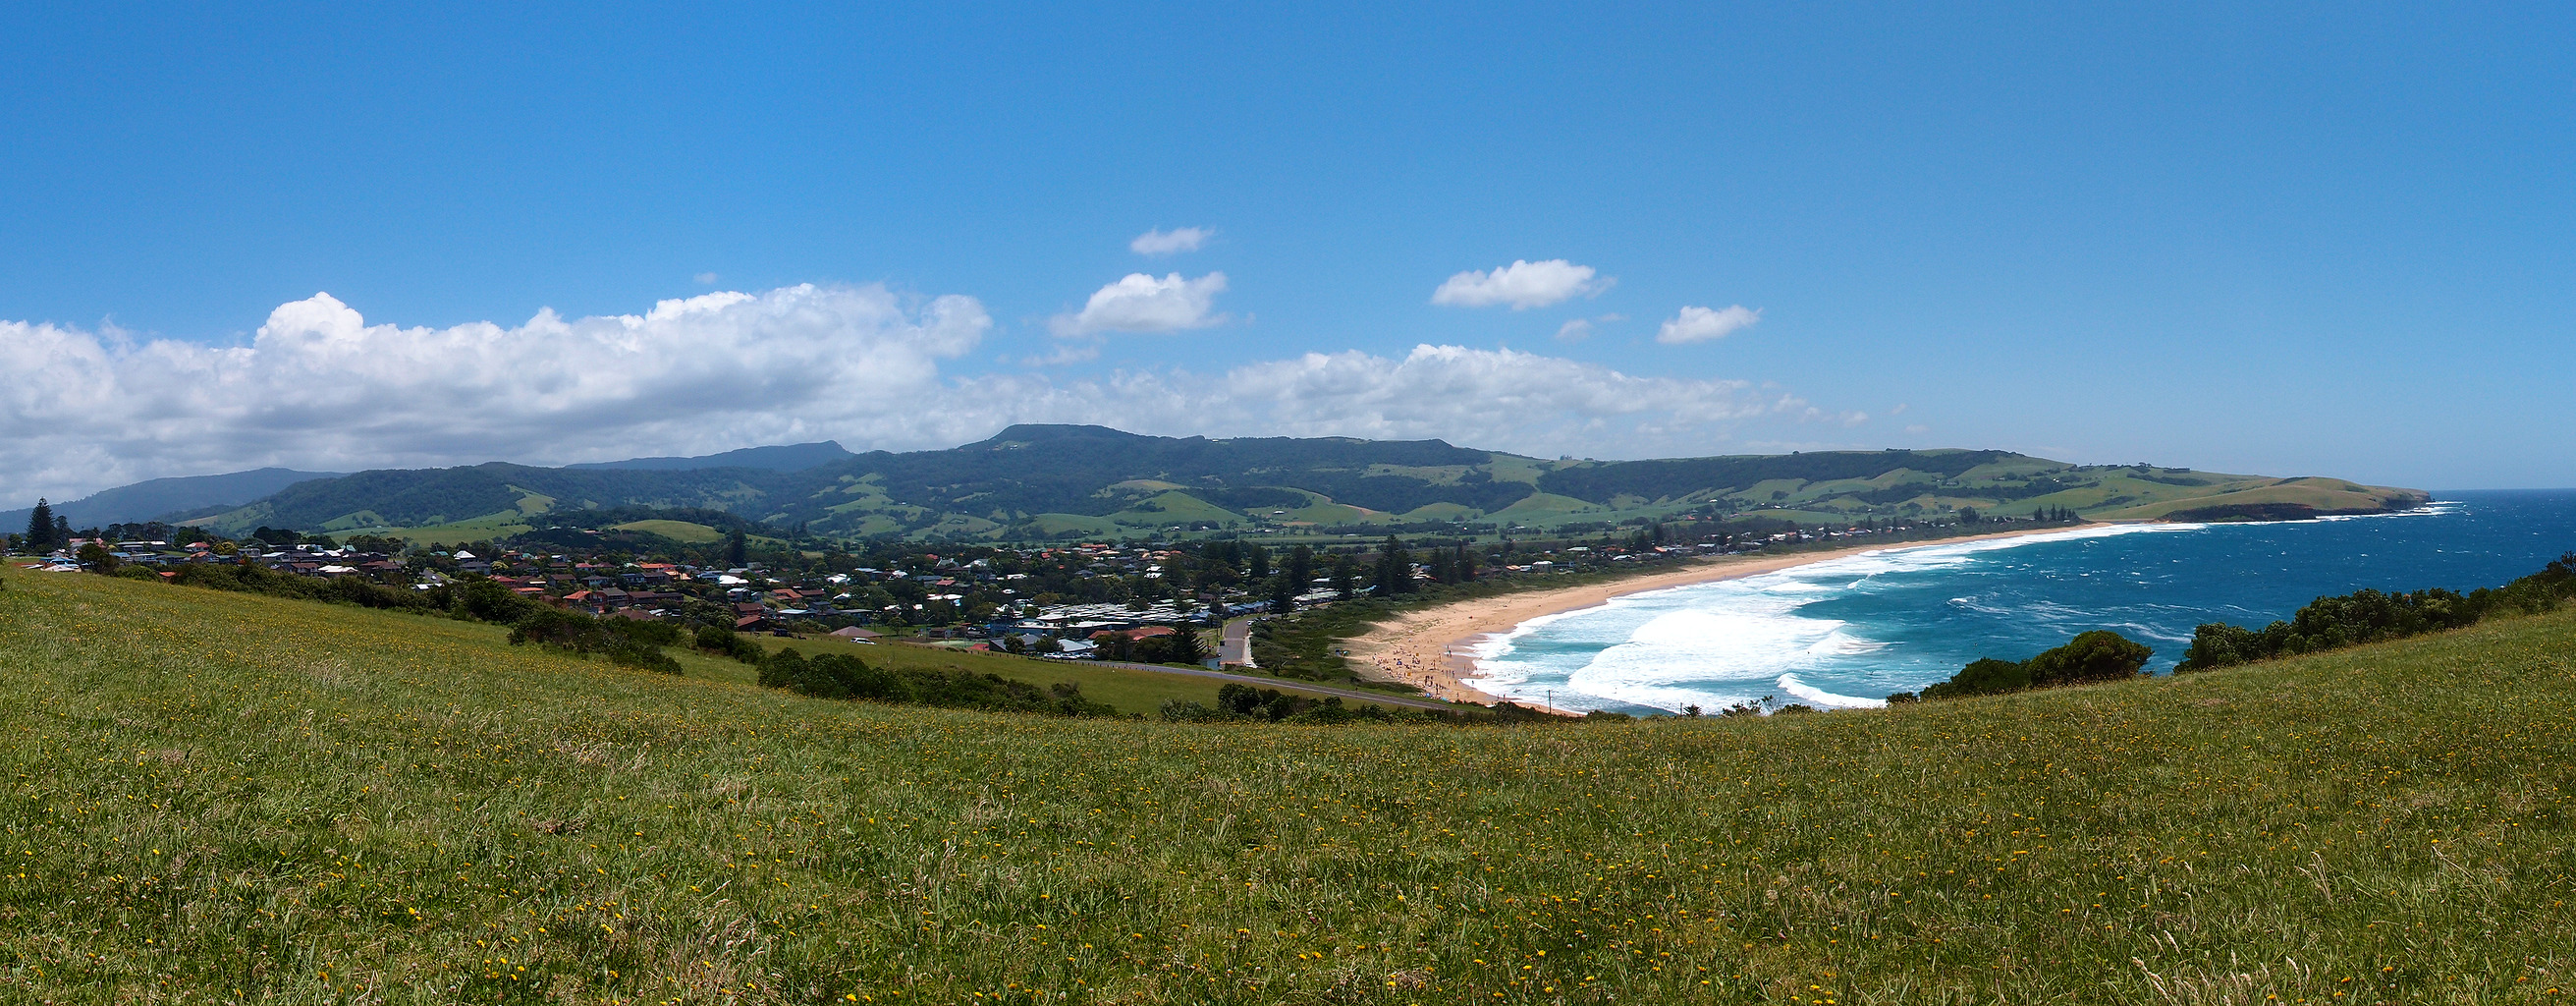 Panorama of Gerringong and Werri Beach from the Southern Headland. Image Credit: By NotTarts - Own work, CC BY-SA 3.0, https://commons.wikimedia.org/w/index.php?curid=17878912